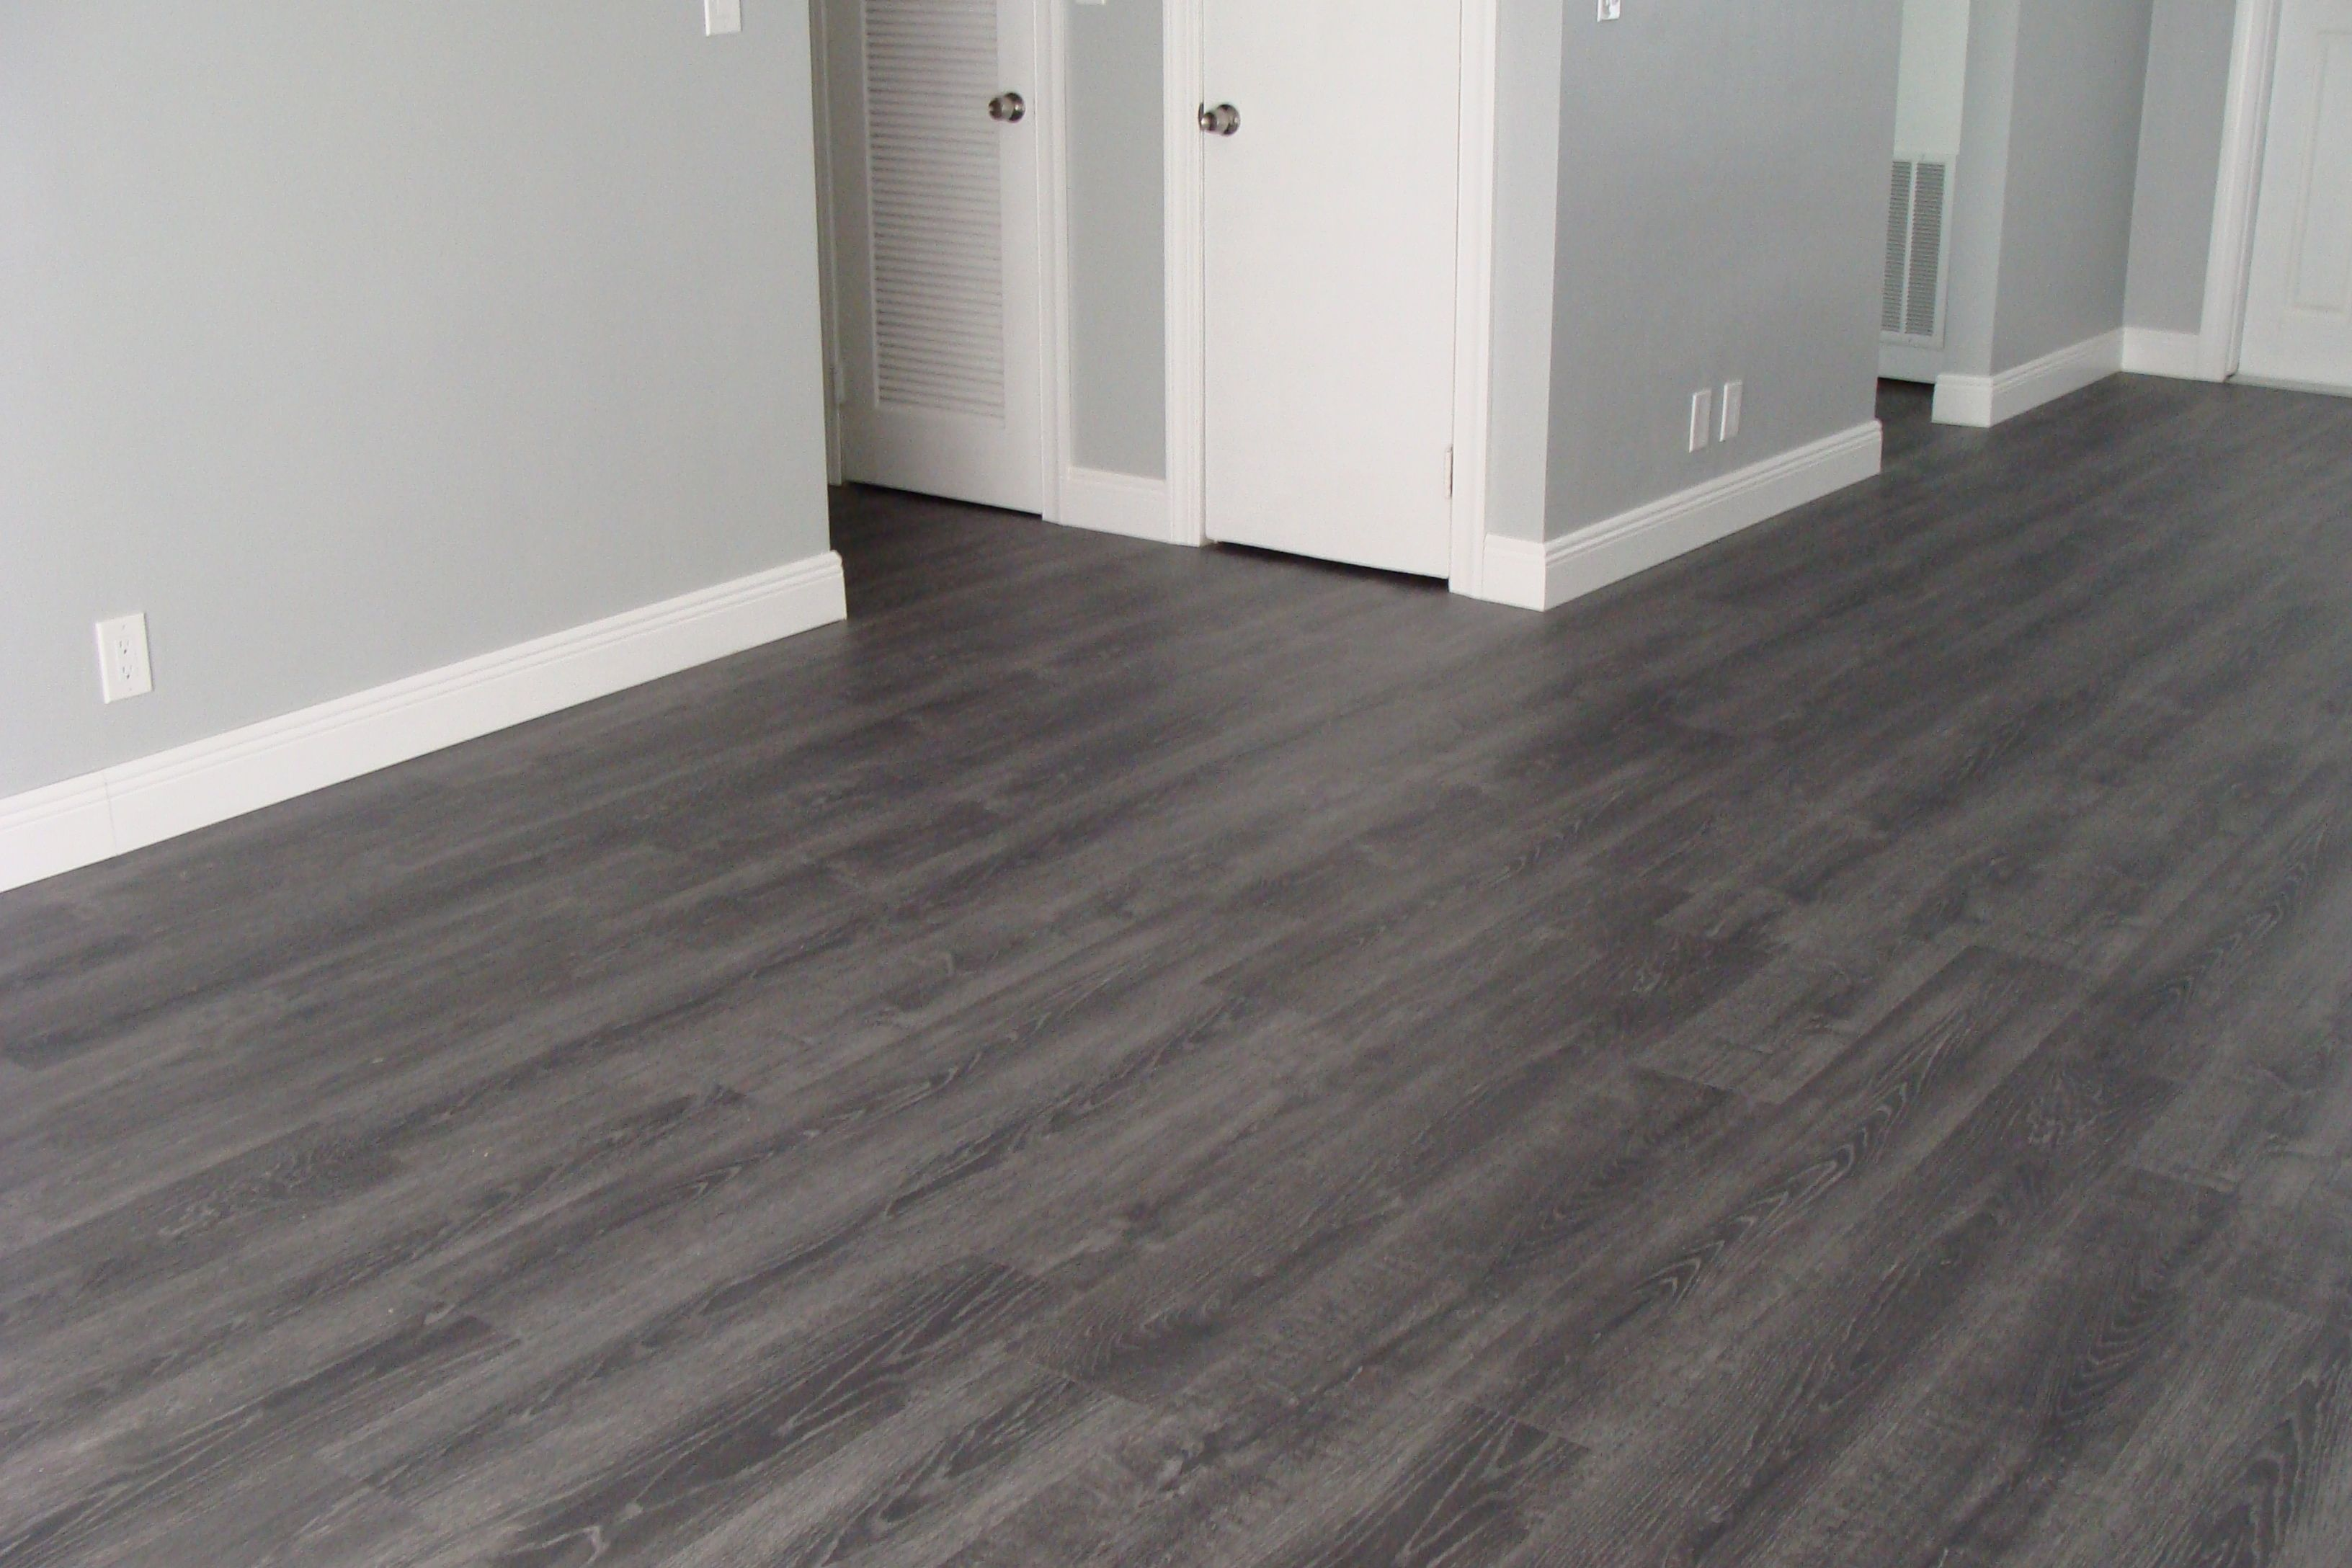 laminate floors choose five customfloor hardwood to specials reasons over wood flooring